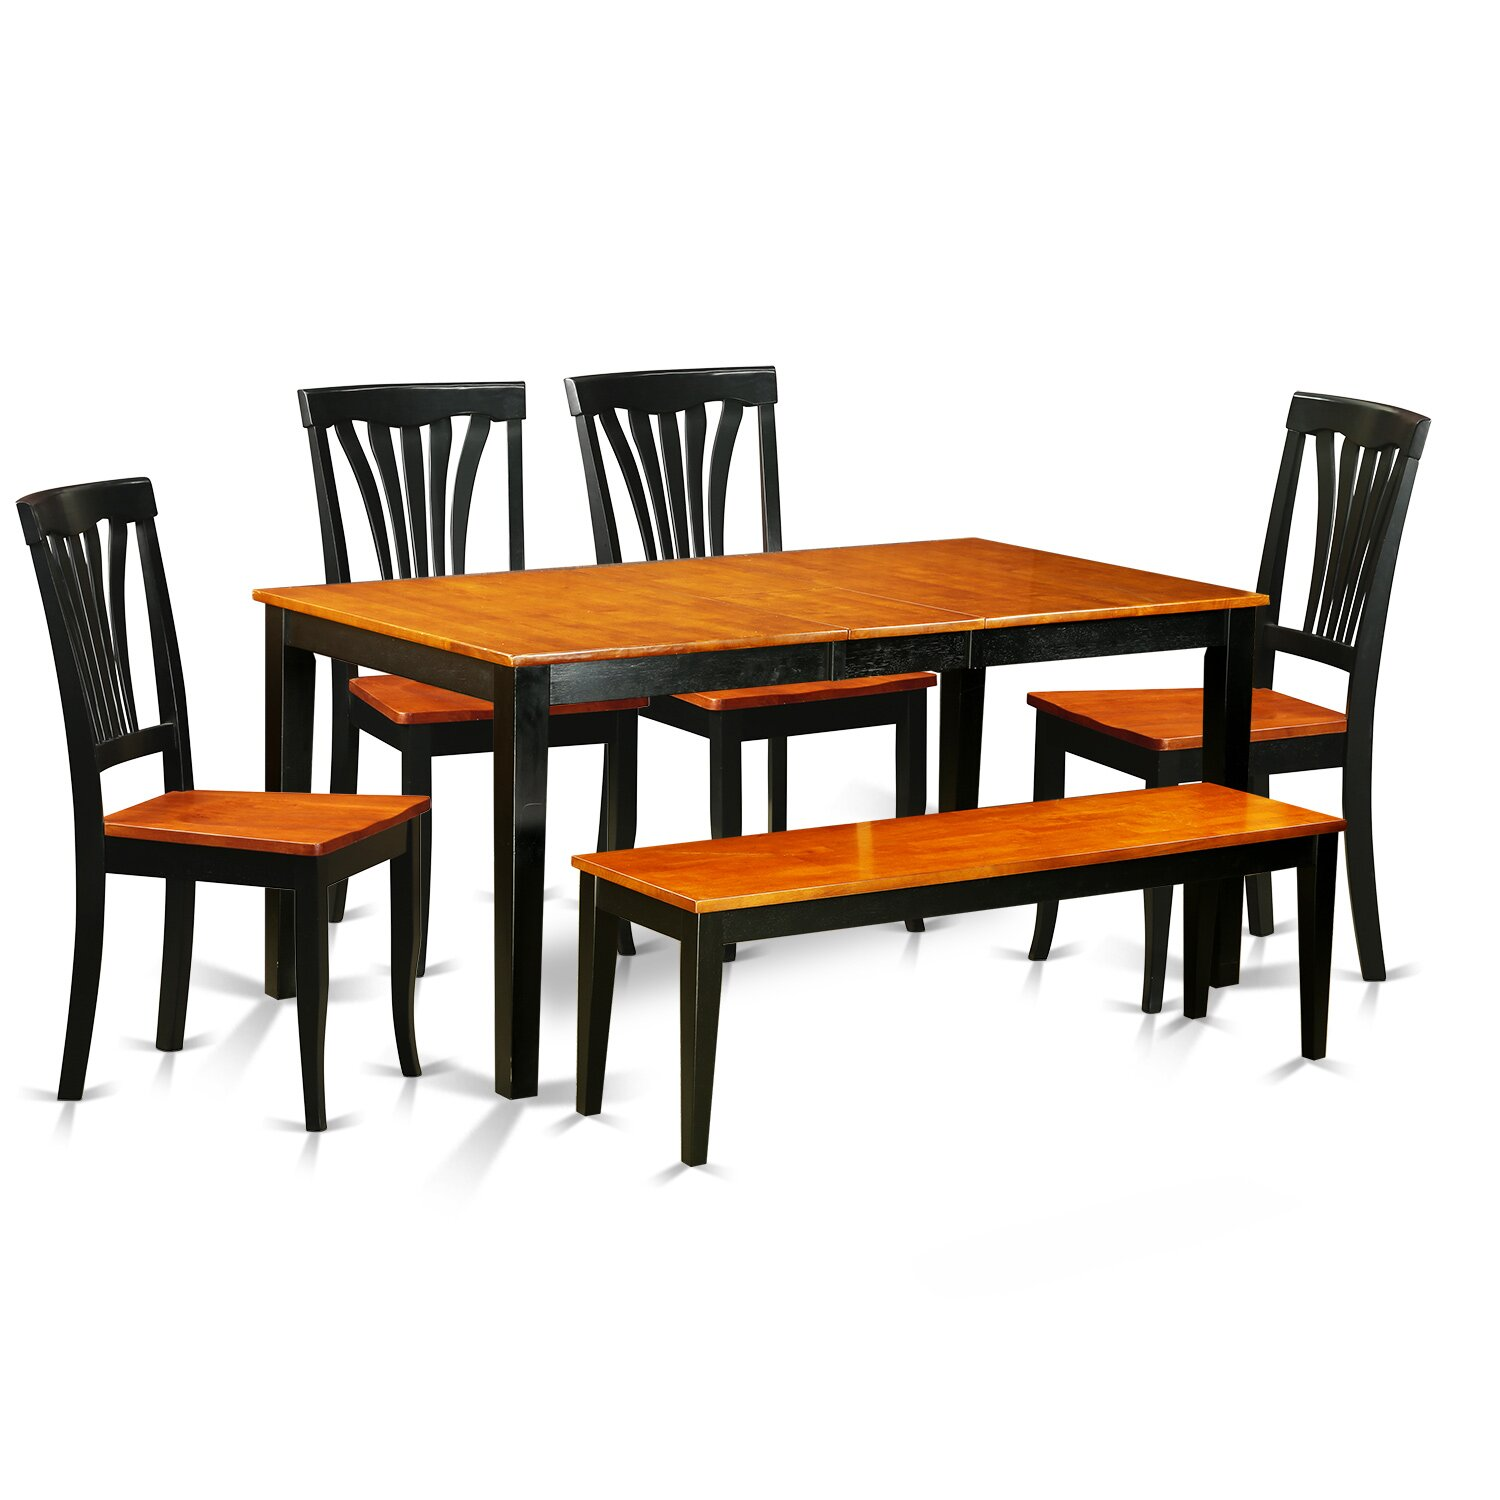 Nicoli 6 piece dining set wayfair for Kitchen table sets for 6